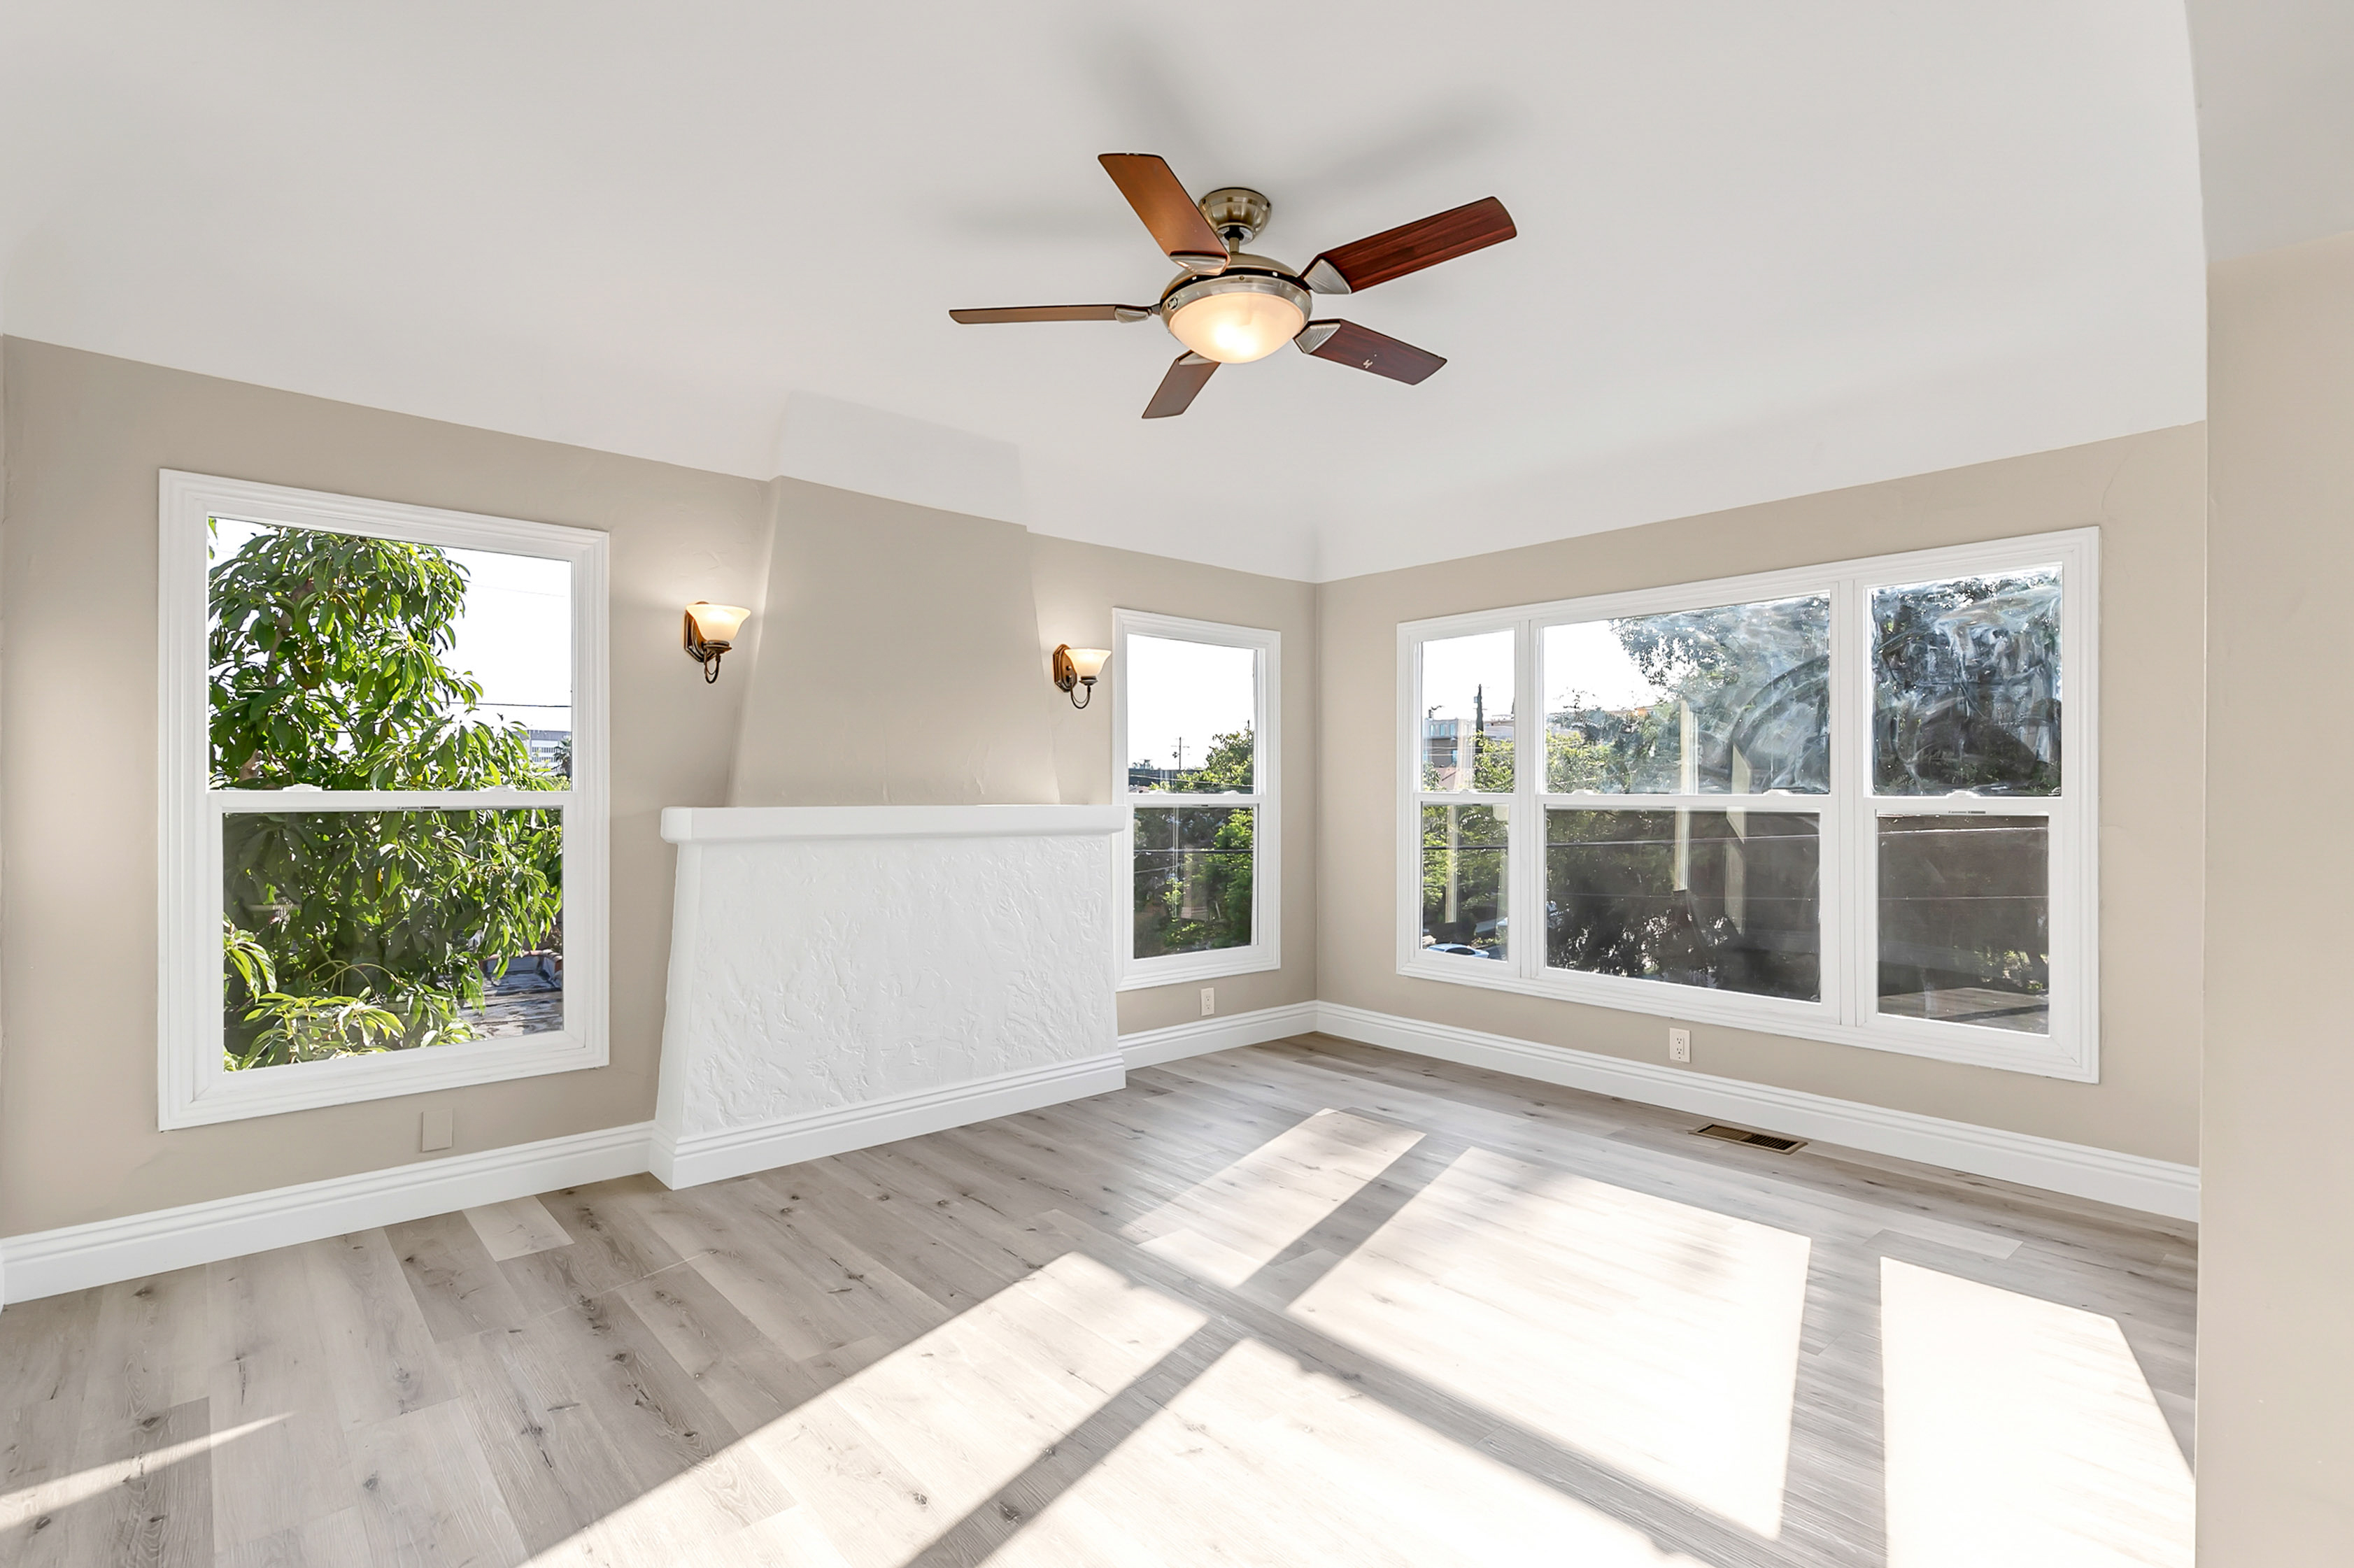 Quiet Echo Park Location | Newly Updated | 1930s Charm | Stainless Steel Appliances